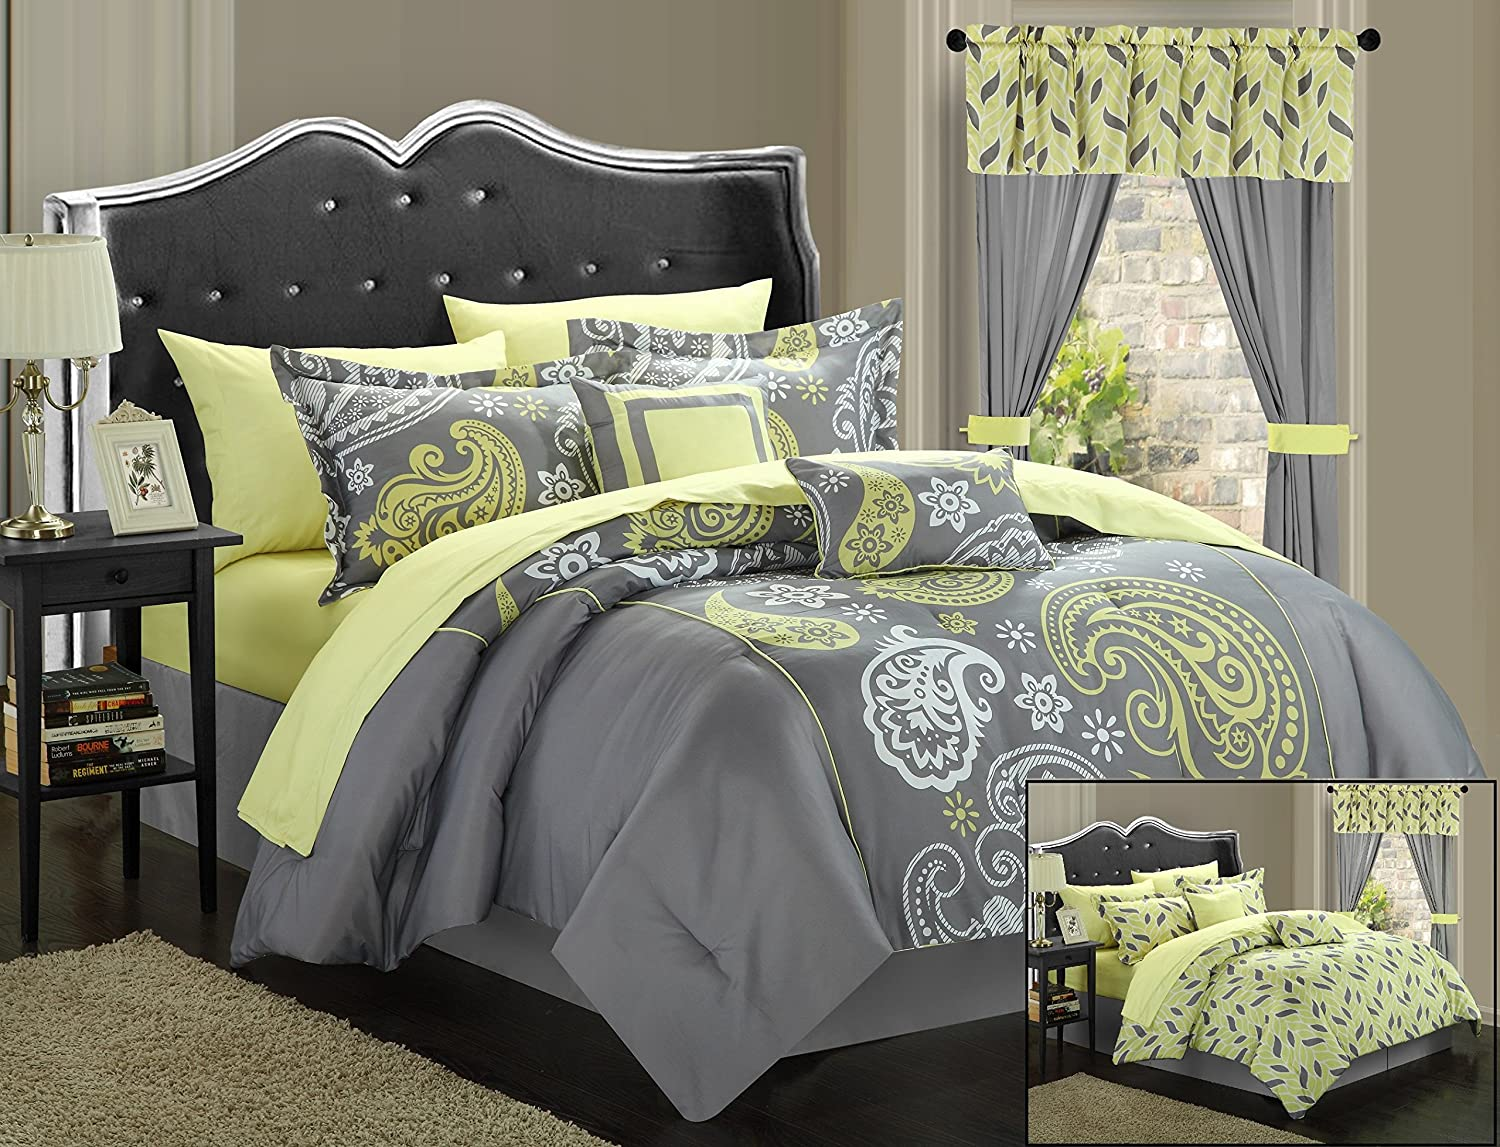 Black And Yellow Comforter Queen: Best Grey And Yellow Bedding Sets